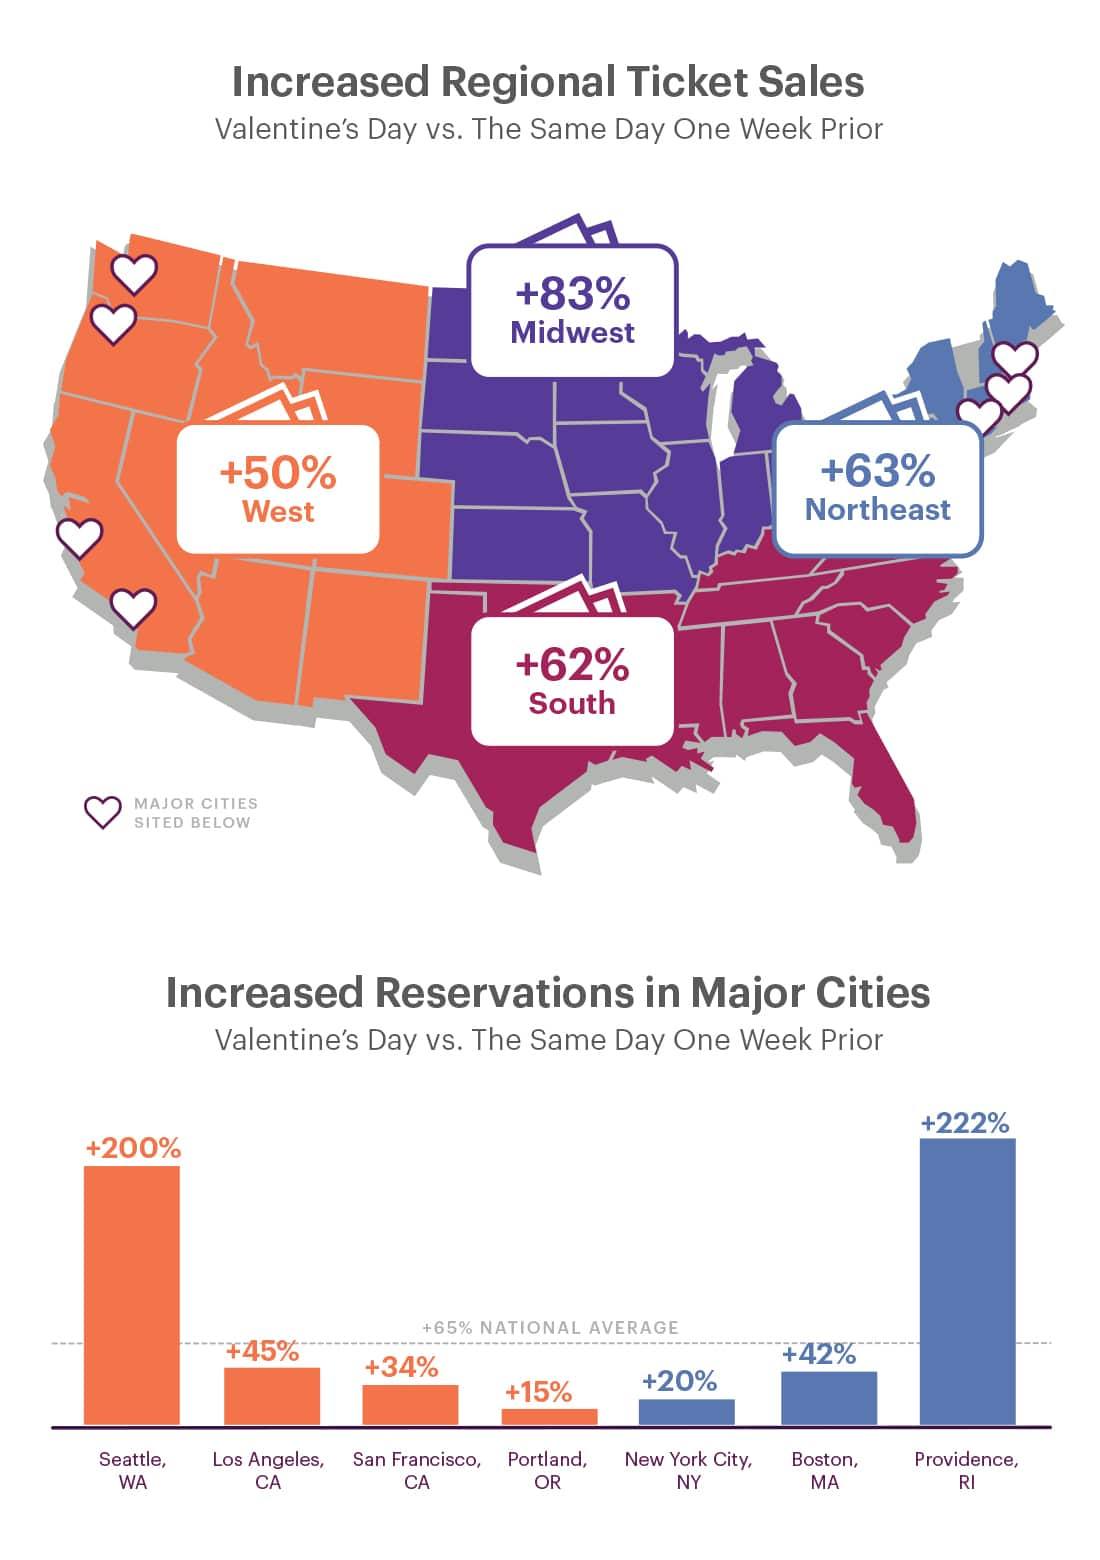 valentine's day reservation and ticket sales data